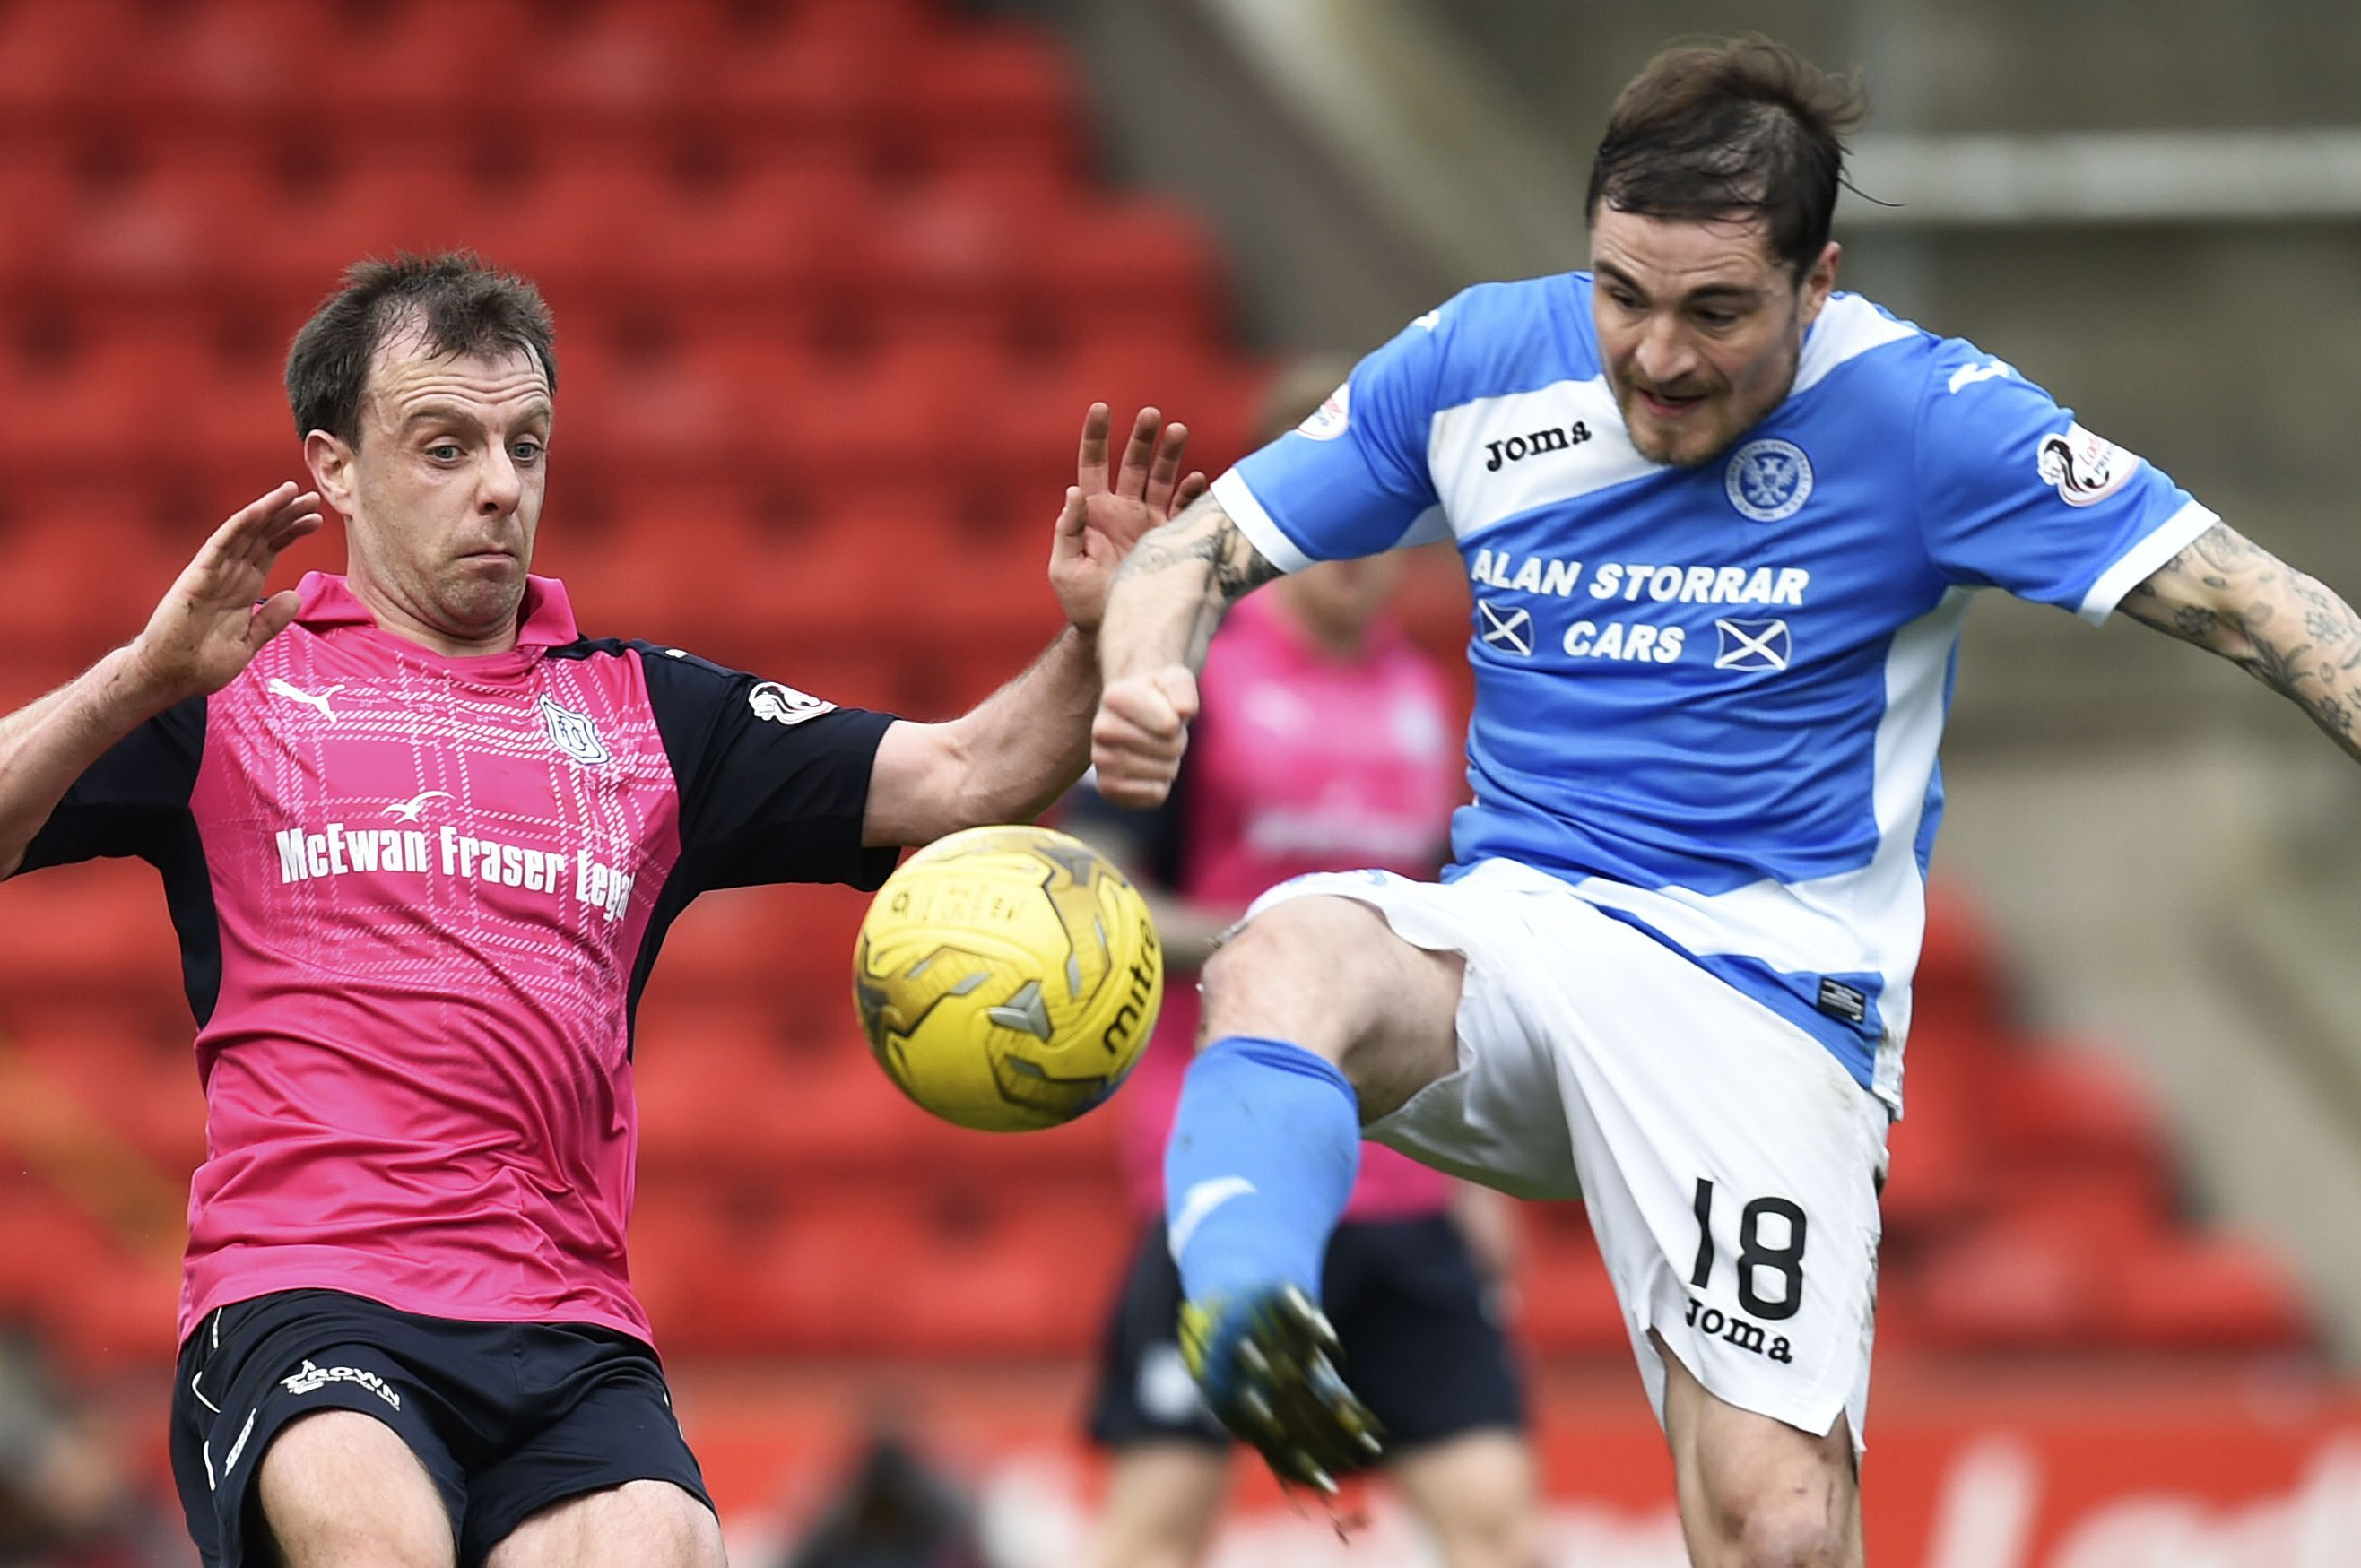 Paul Paton battles for the ball with Dundee's Paul McGowan.